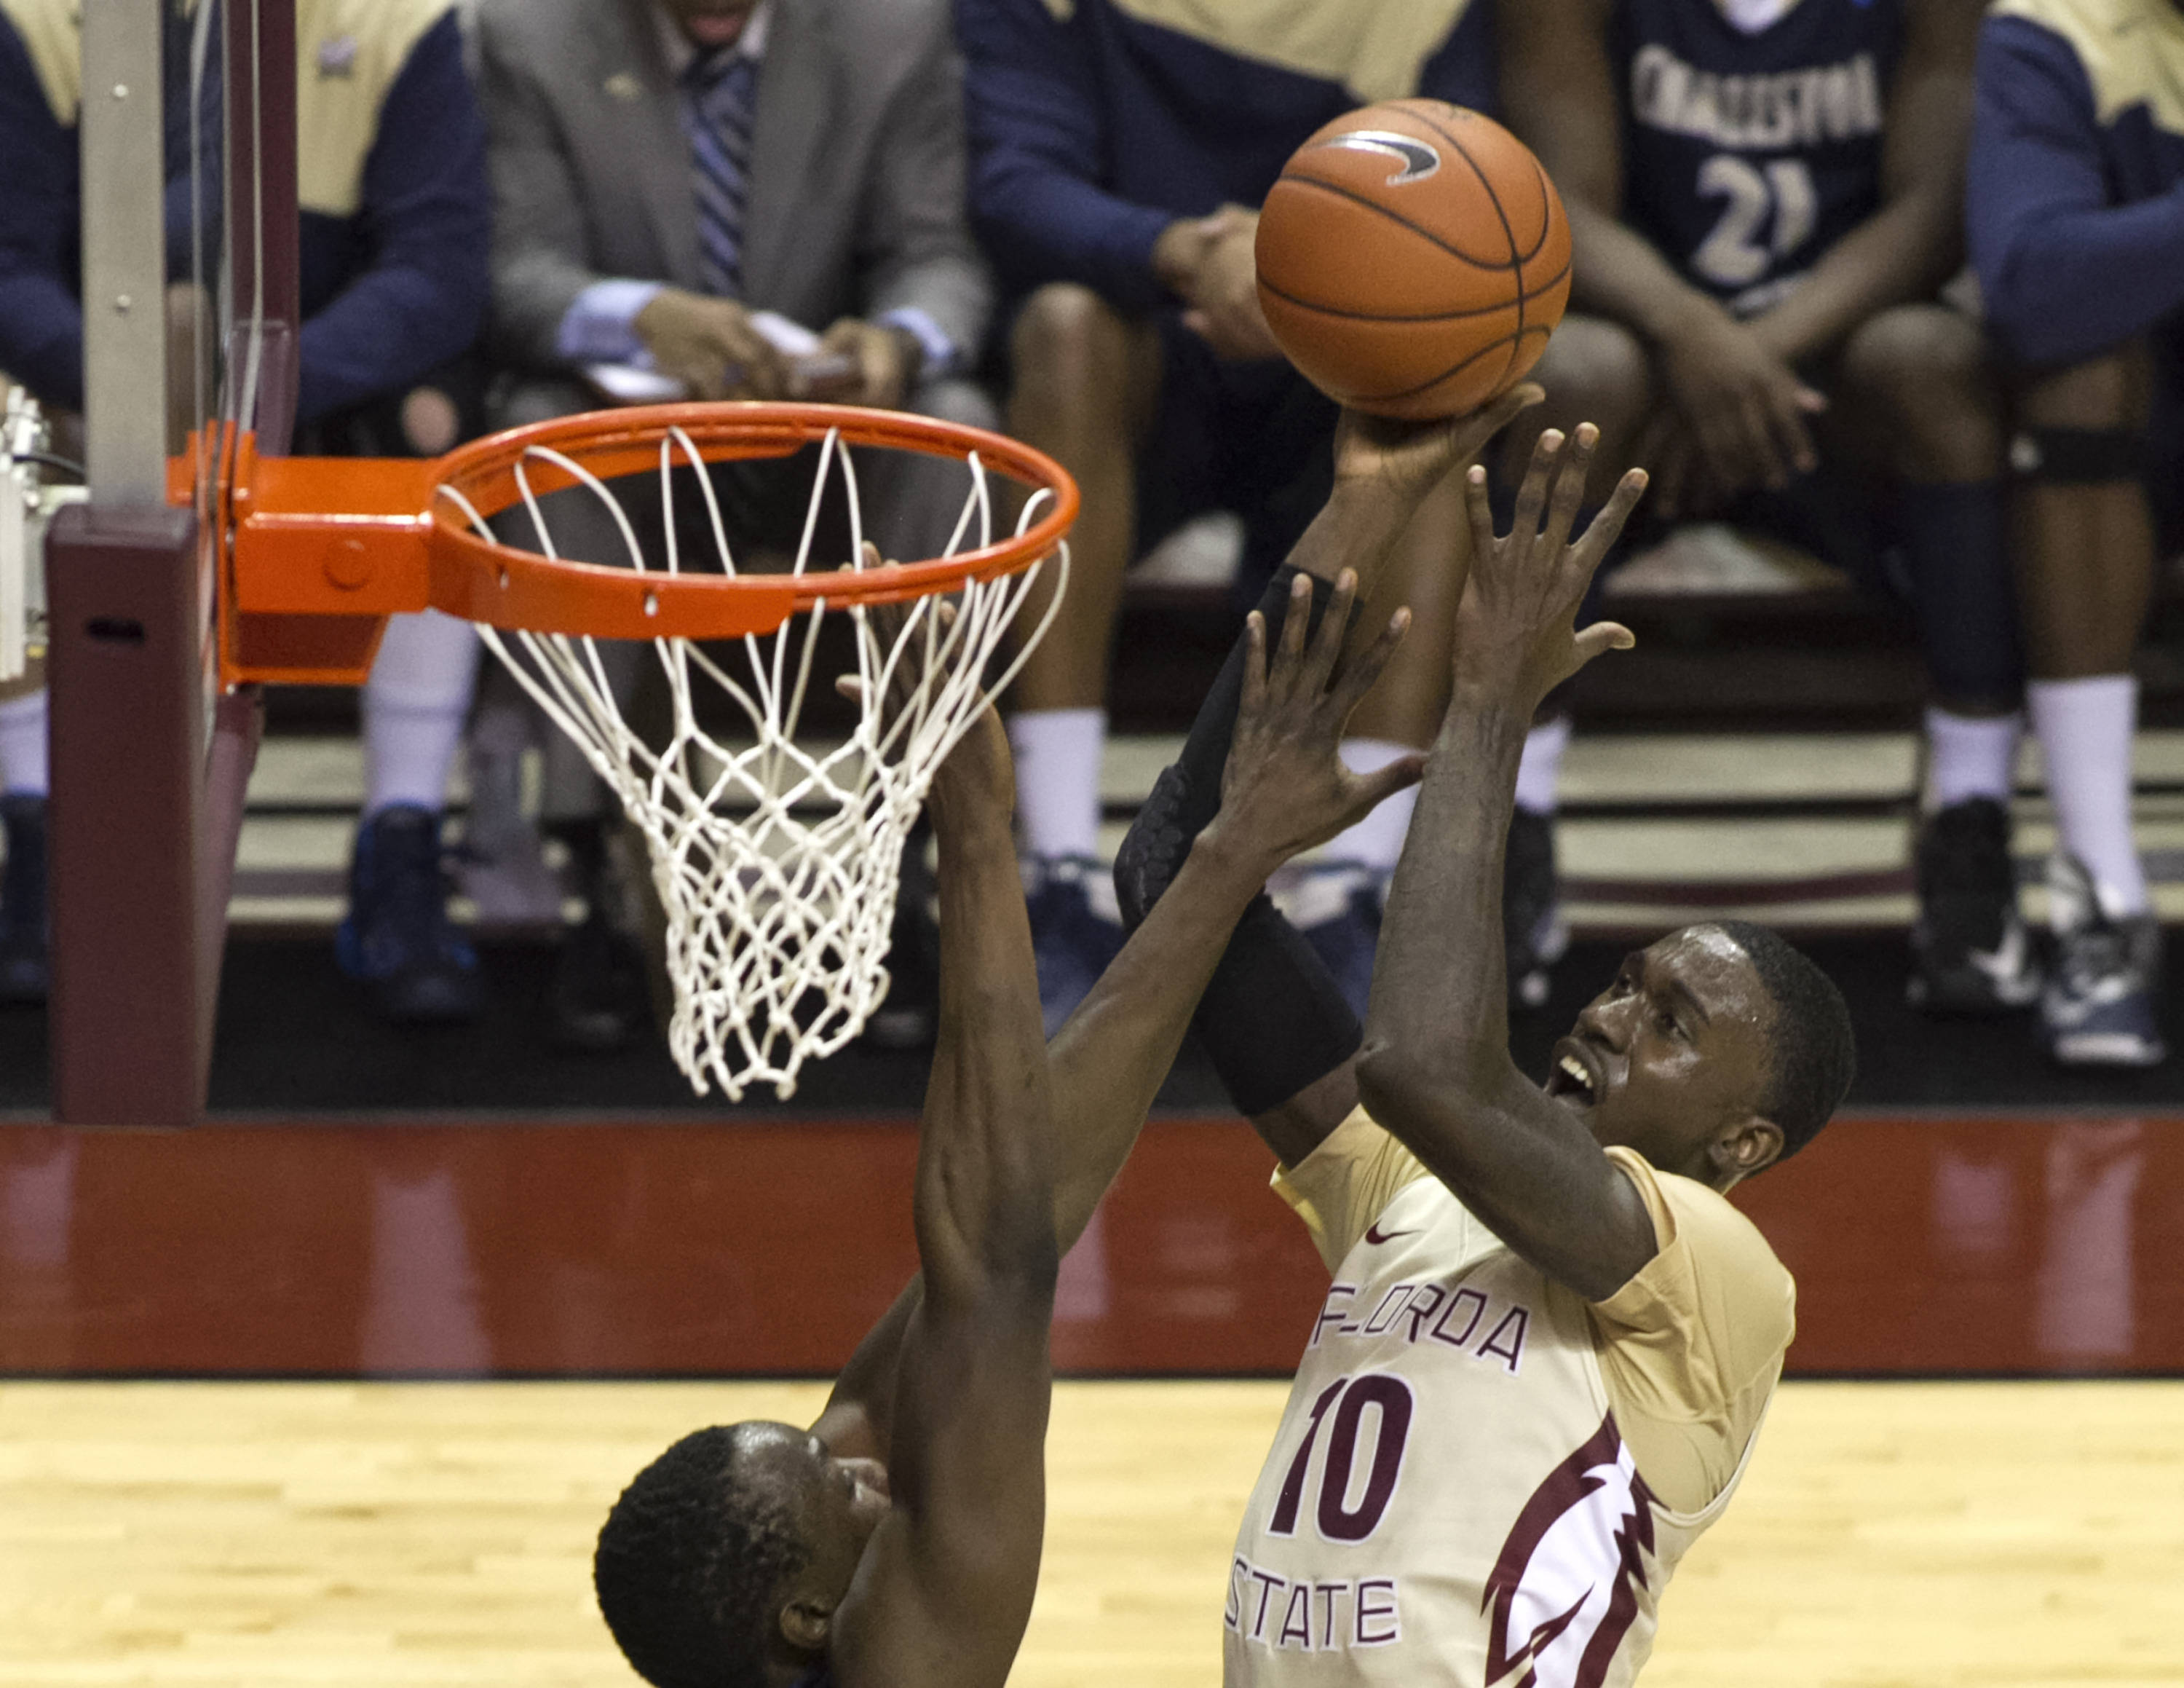 Okaro White (10) going high for two points, FSU vs Charleston Southern, 12-30-13,  (Photo by Steve Musco)